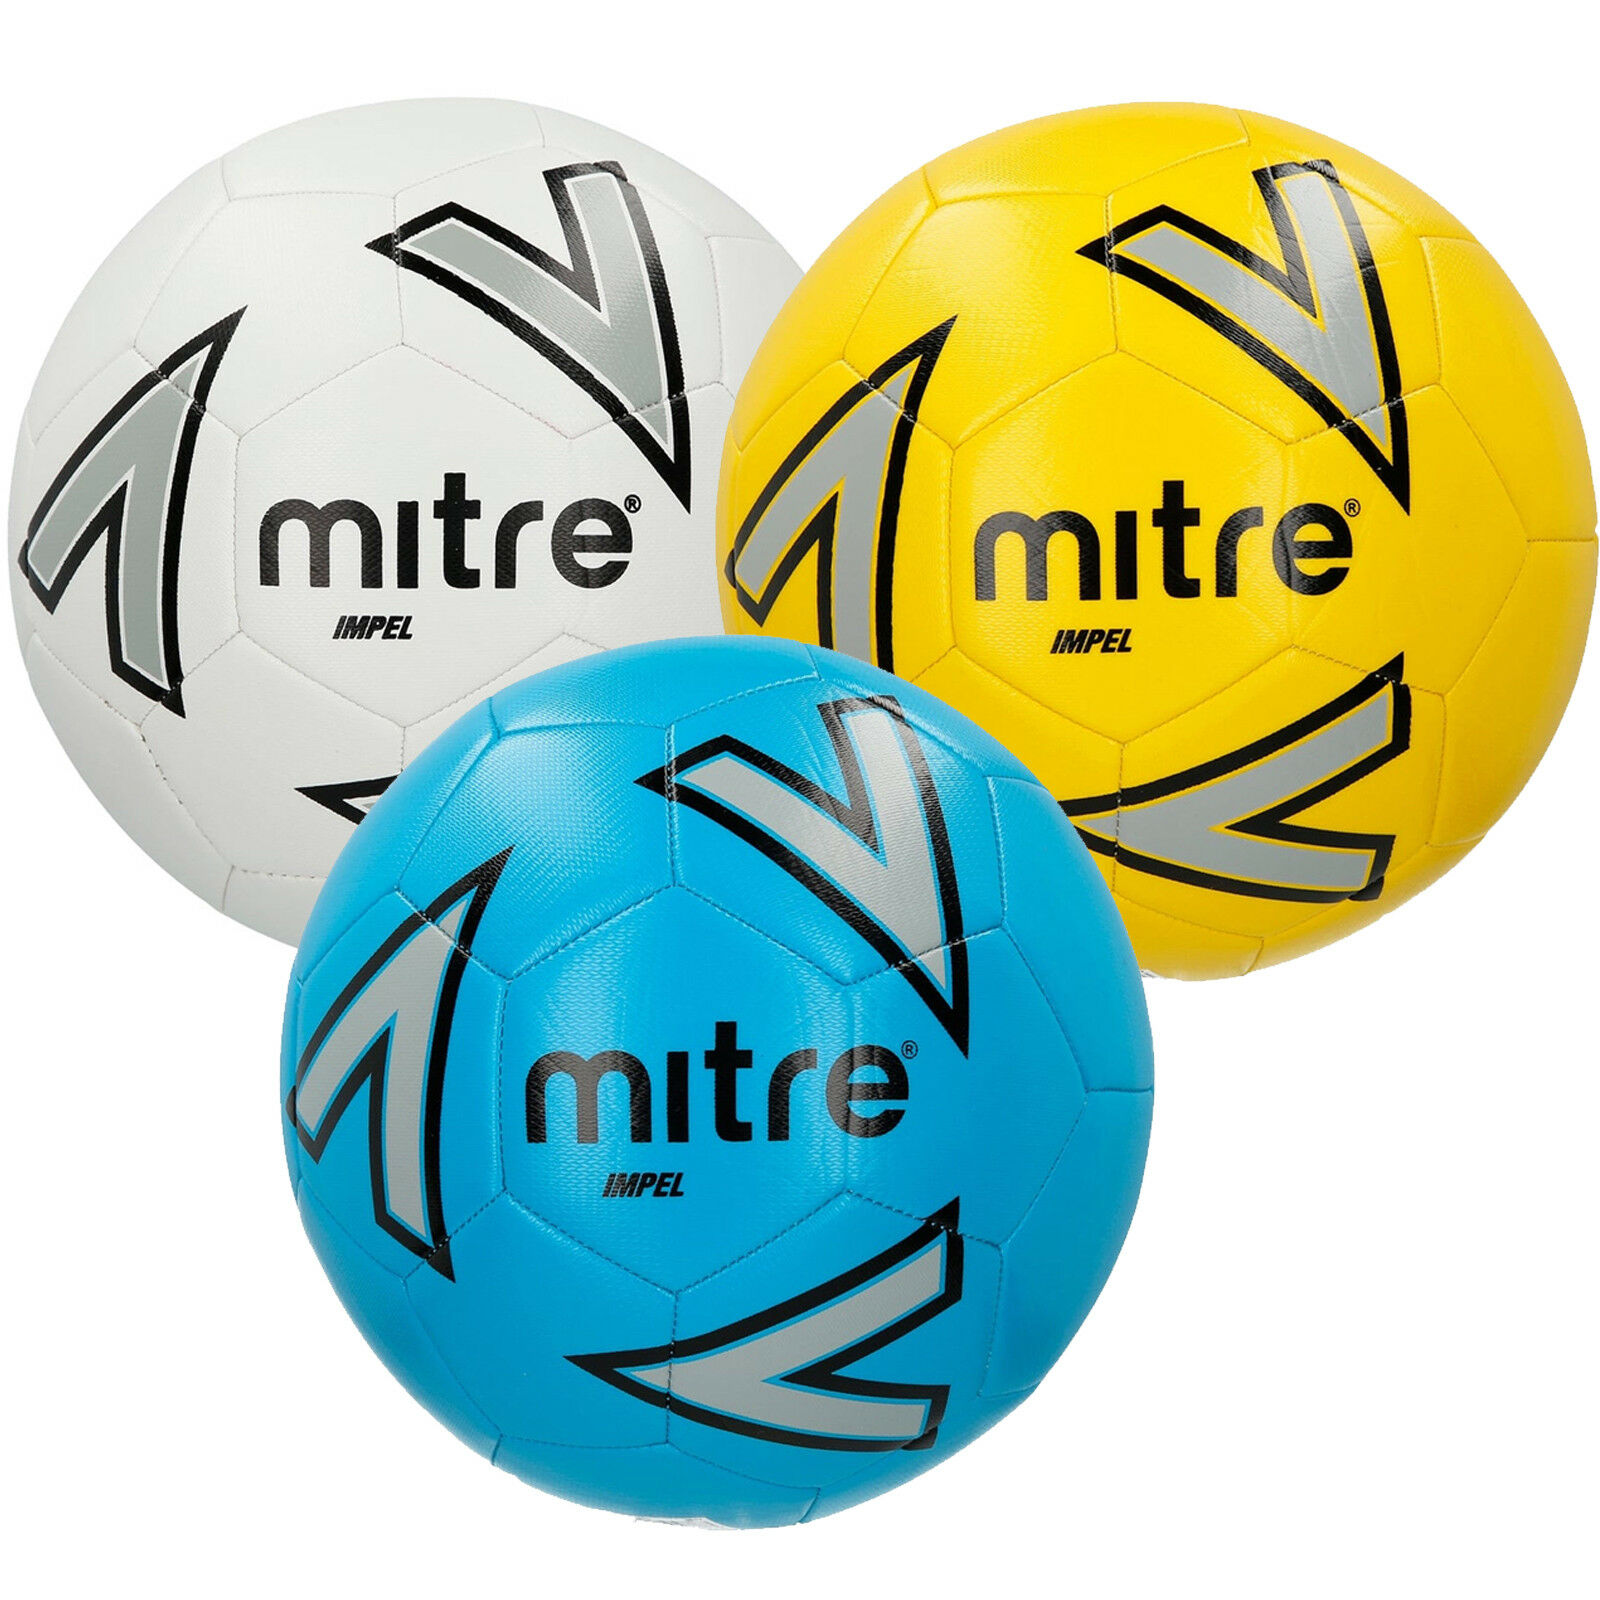 Mitre Impel Training Ball Grass Astro Football New